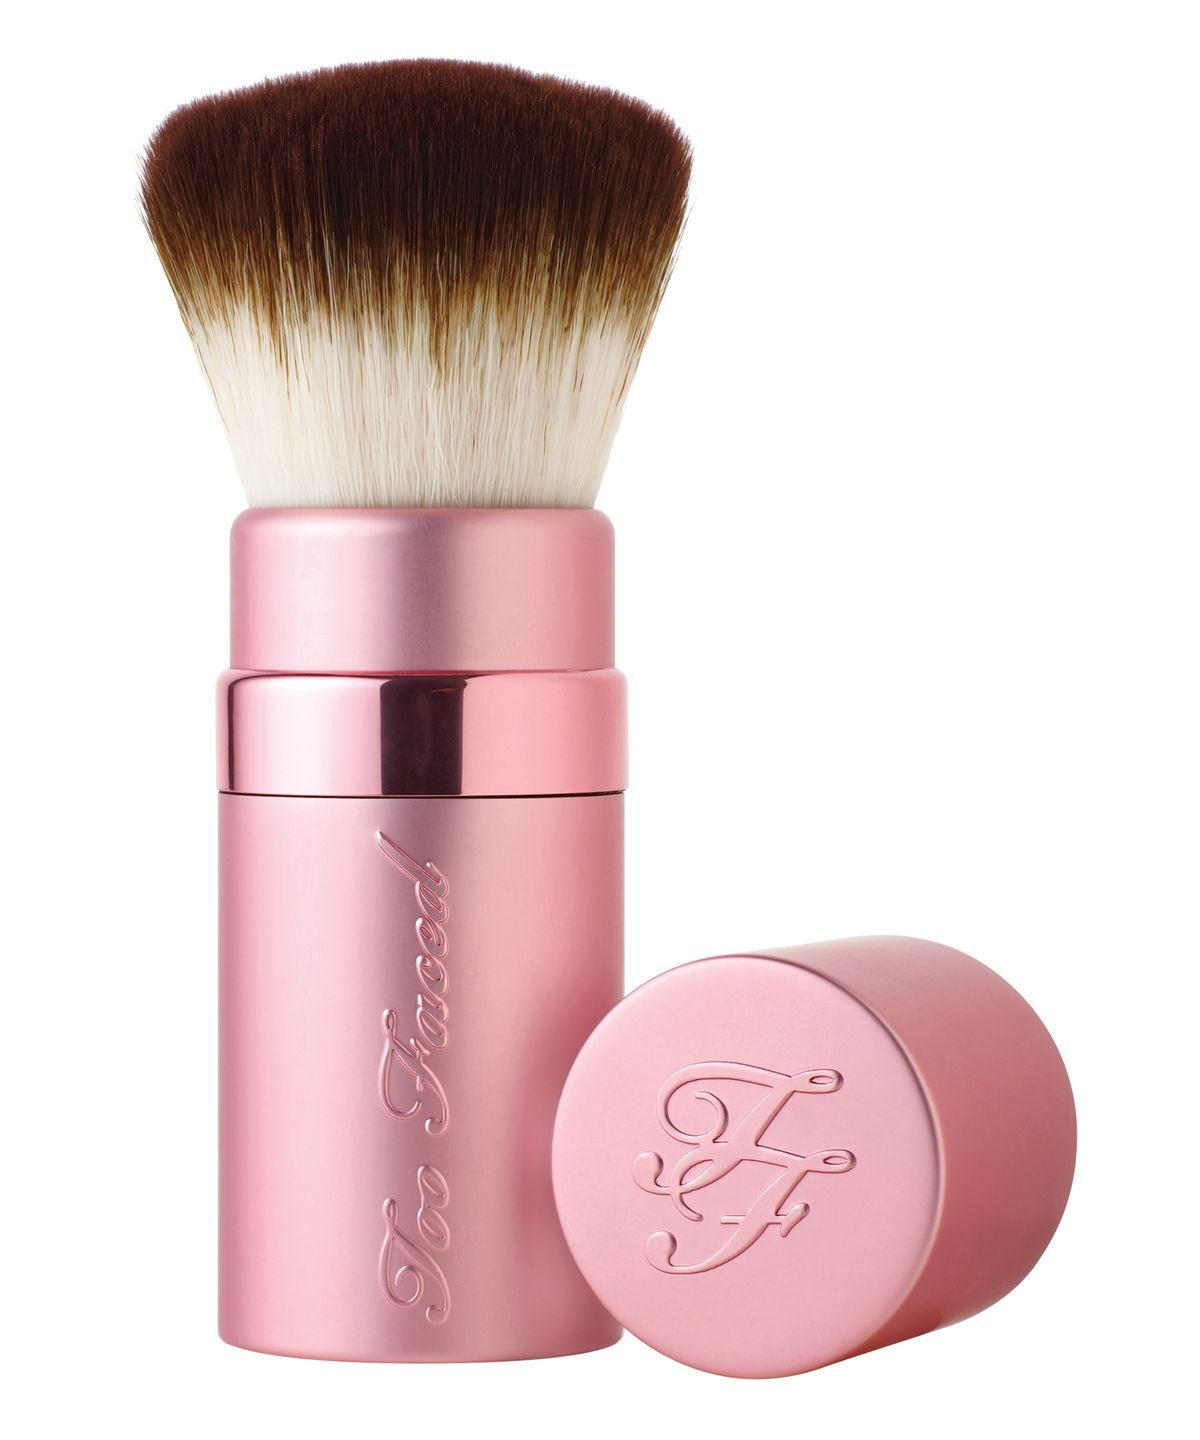 Too Faced Retractable Kabuki Brush for Women